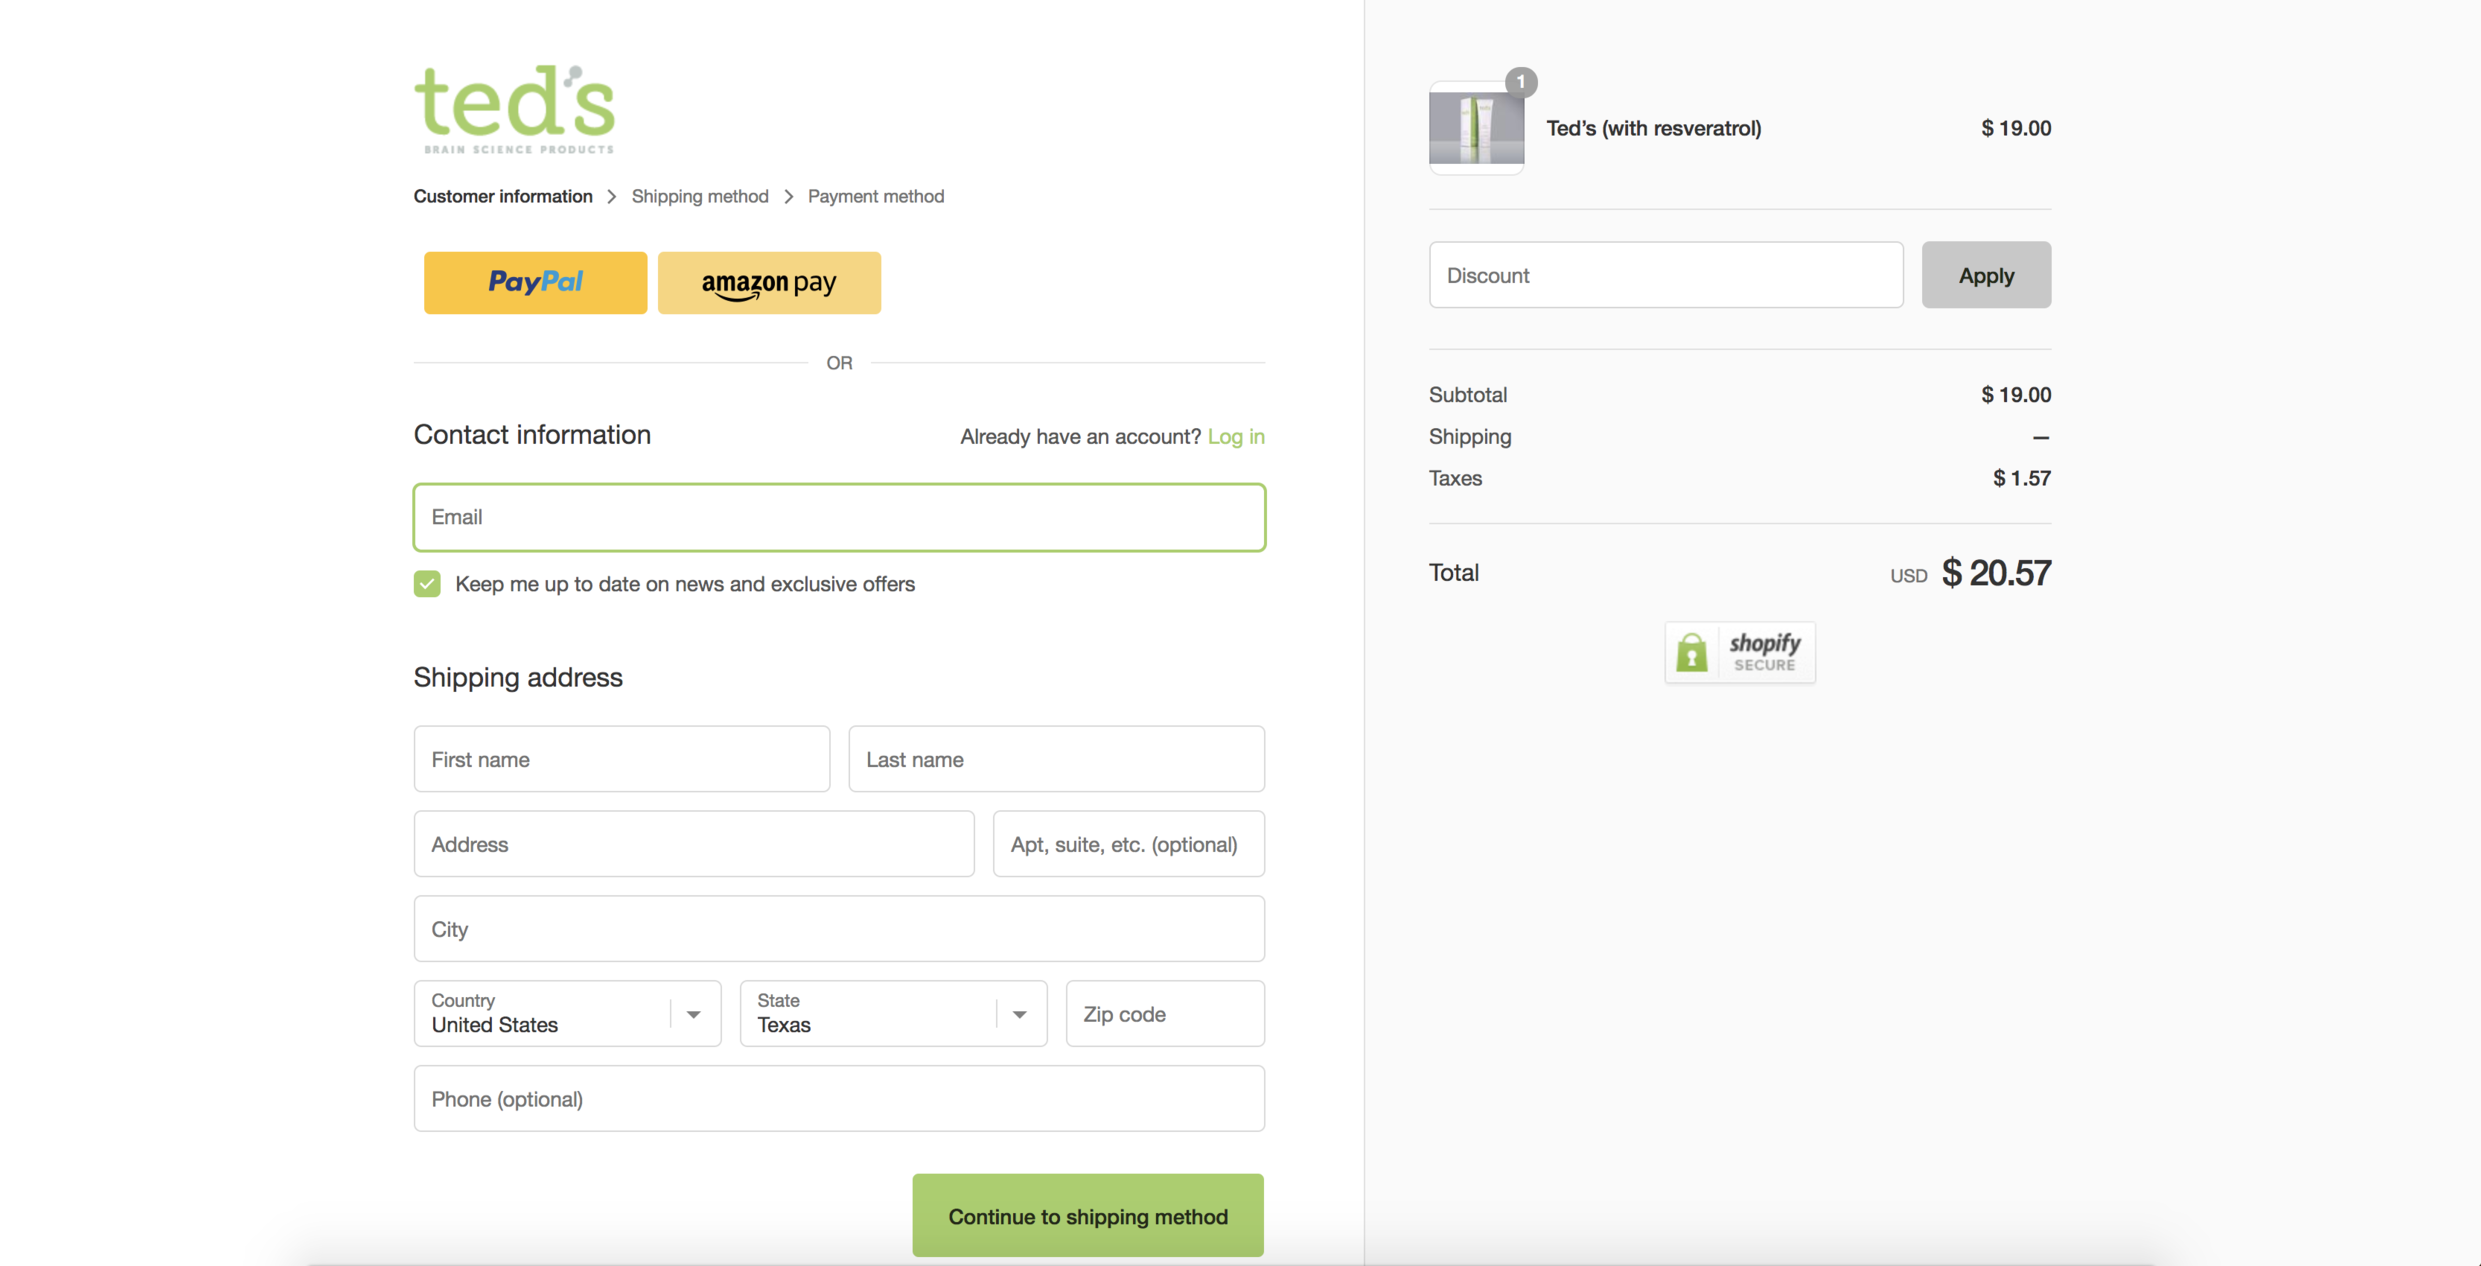 Treatment - This is the treatment version of the same 'Checkout' page. You'll notice only a small variation in design with the addition of the 'Shopify Secure' badge on the right hand side.Here are the results observed for the treatment page:Treatment: 133 Sessions, 94 Conversions (70.4%)